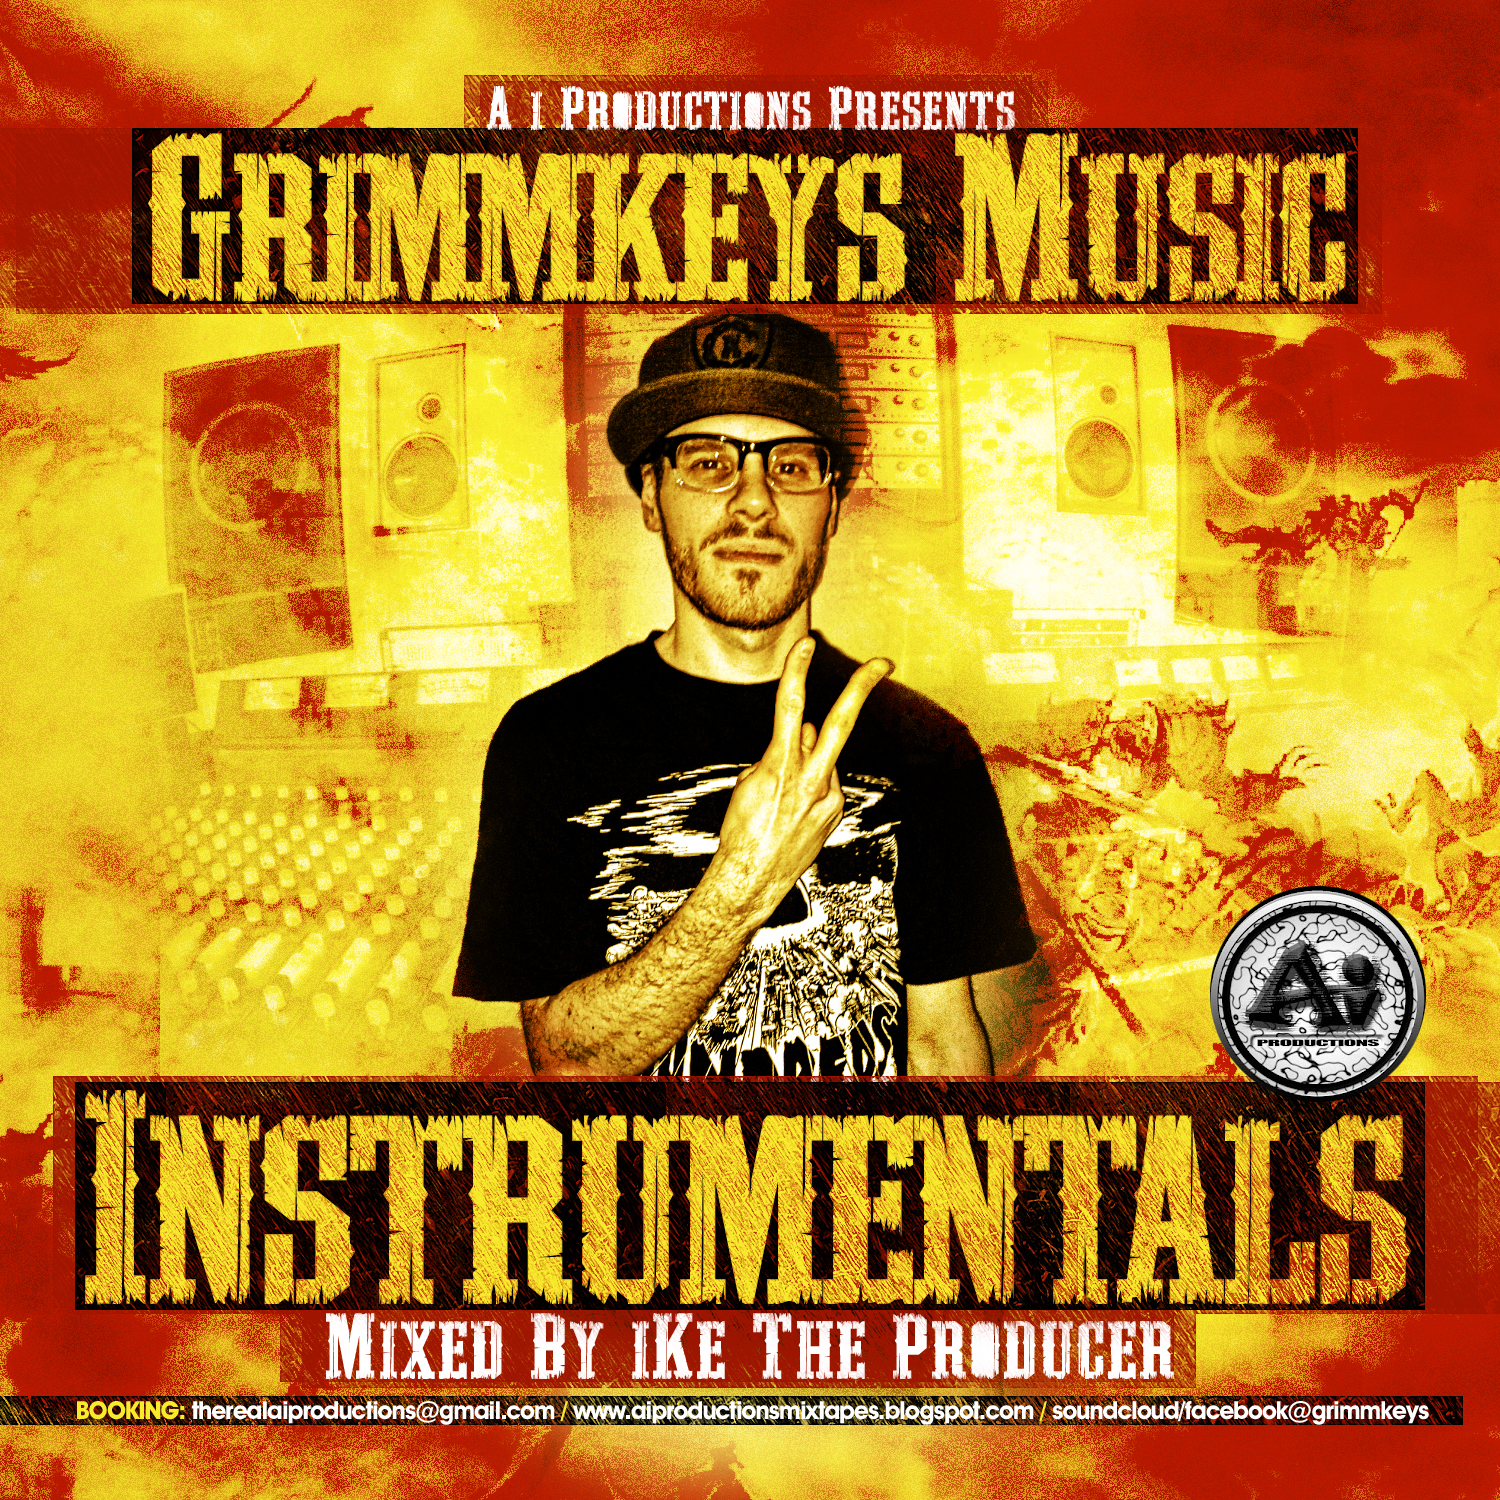 grimmkeys-music-ai-productions-instrumentals-cover copy.jpg